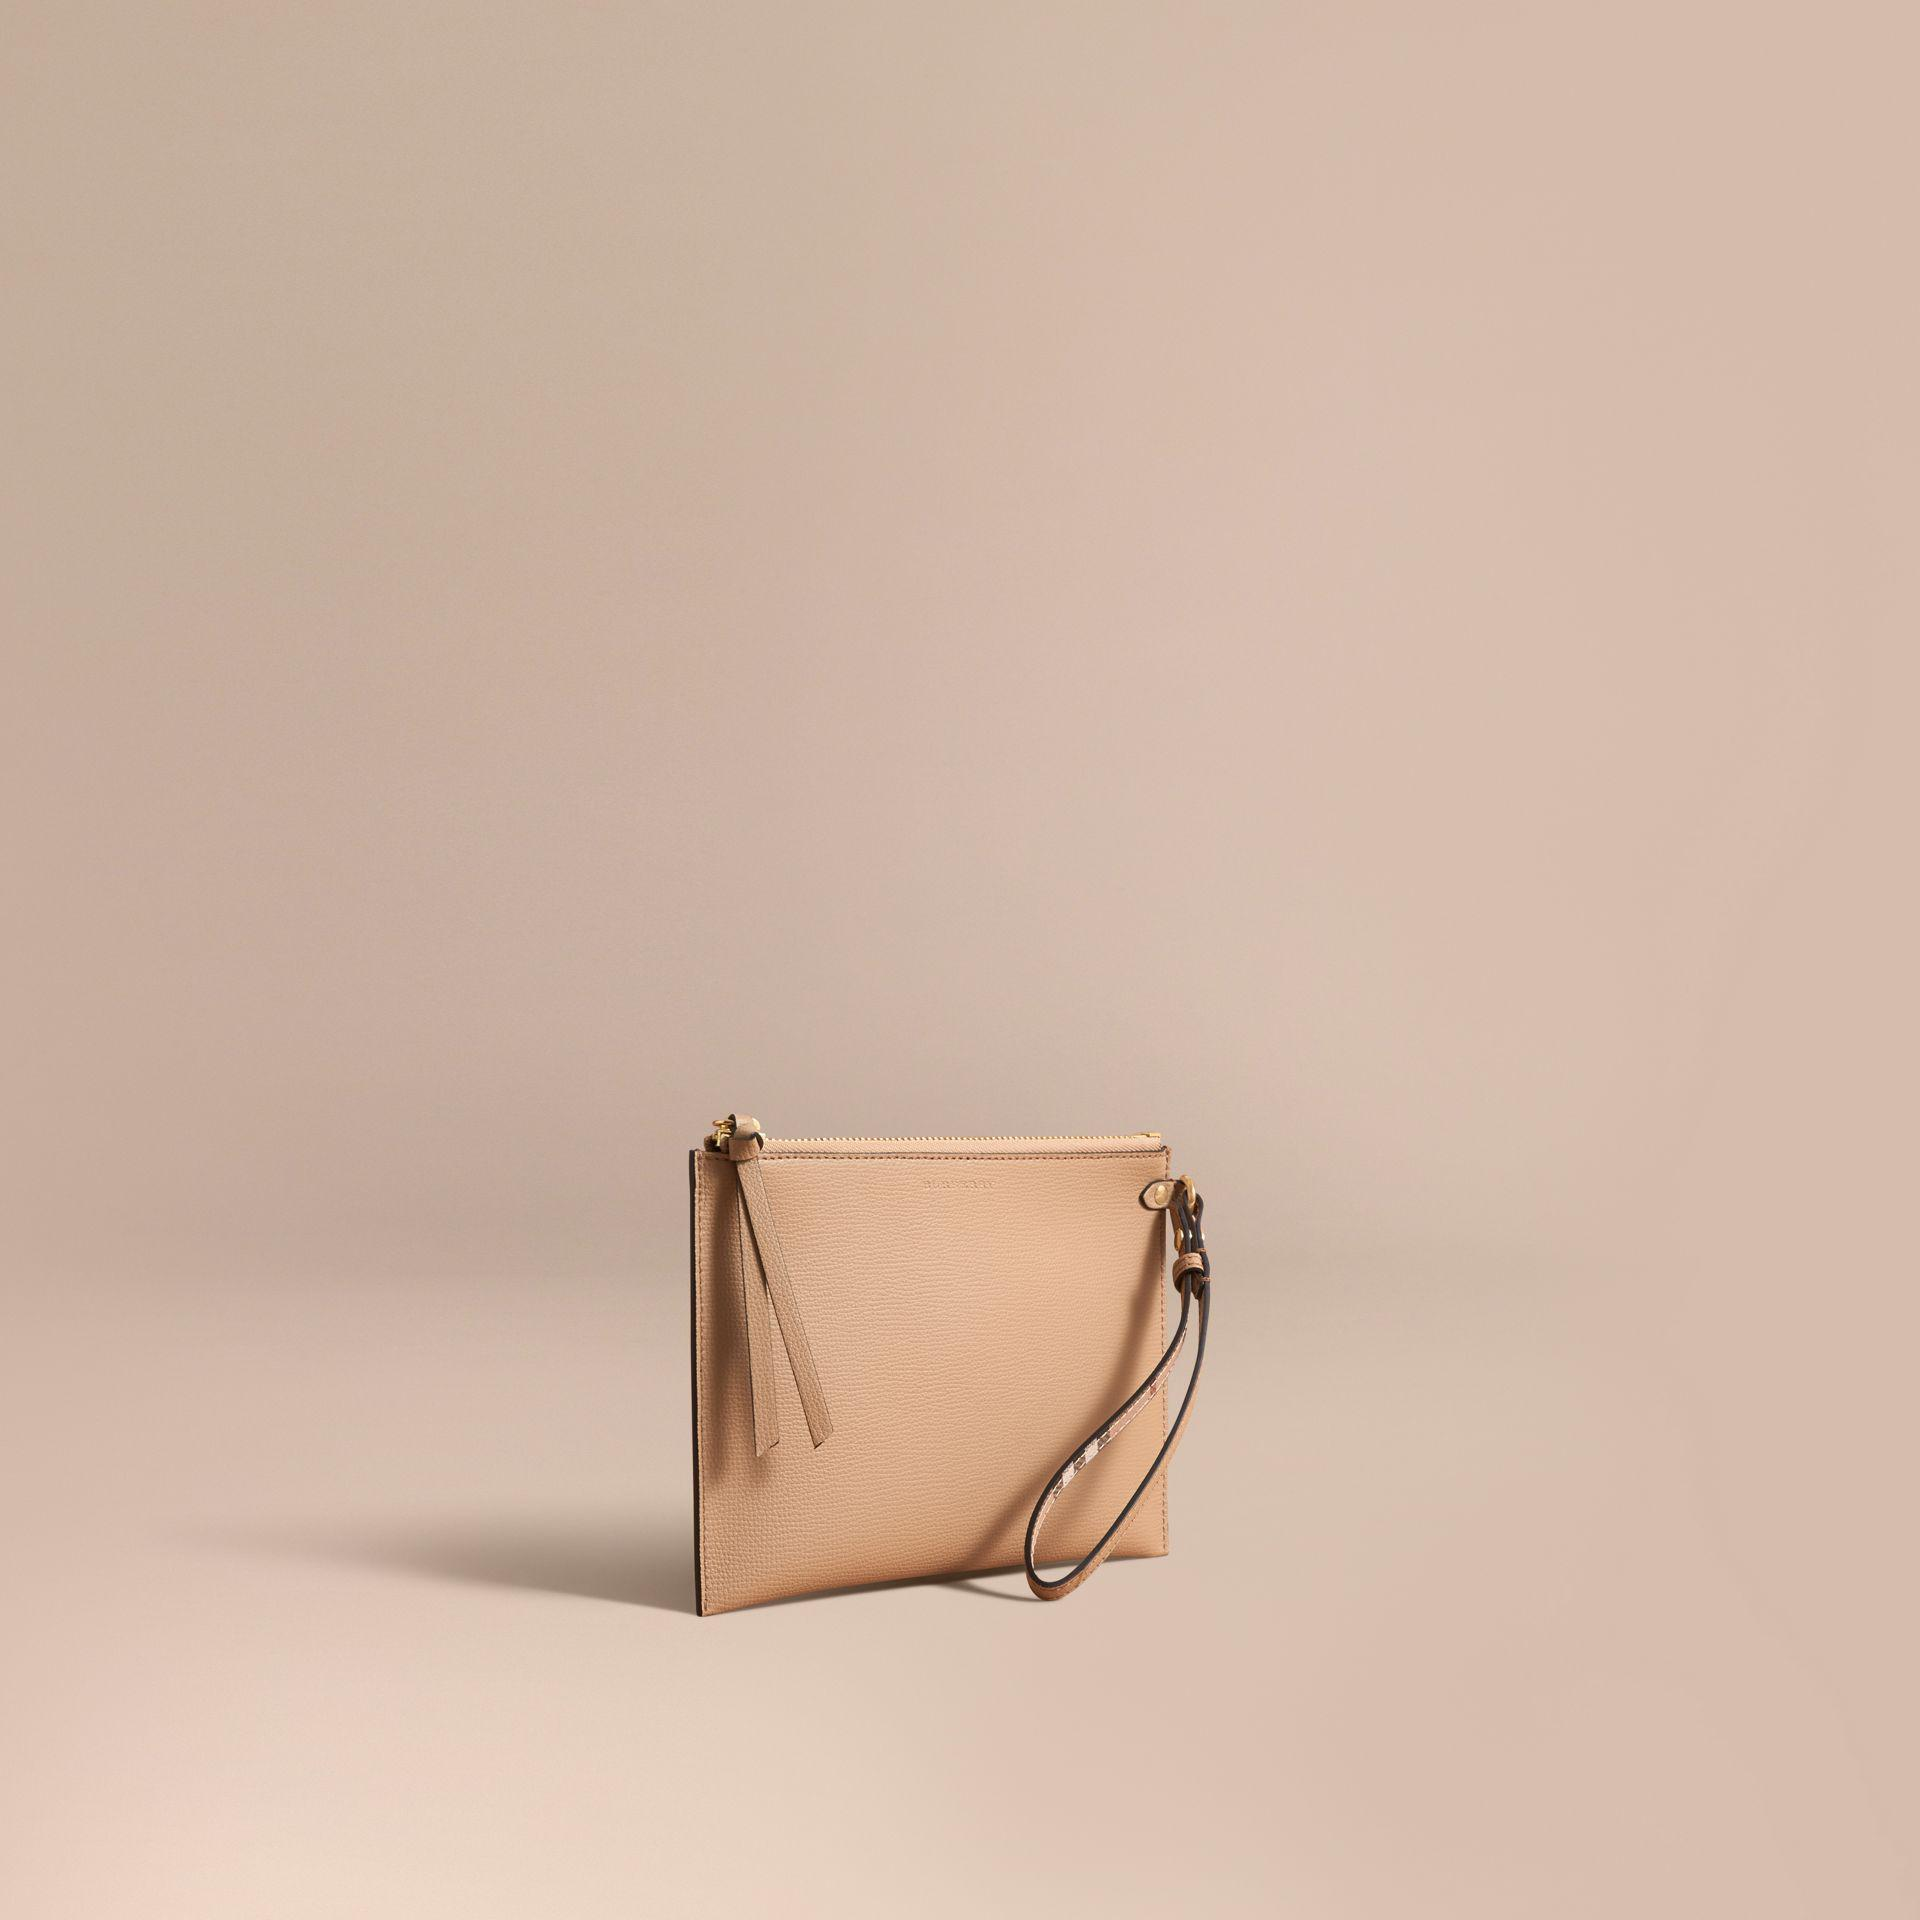 f53b776857da Lyst - Burberry Haymarket Check And Leather Clutch Bag in Natural